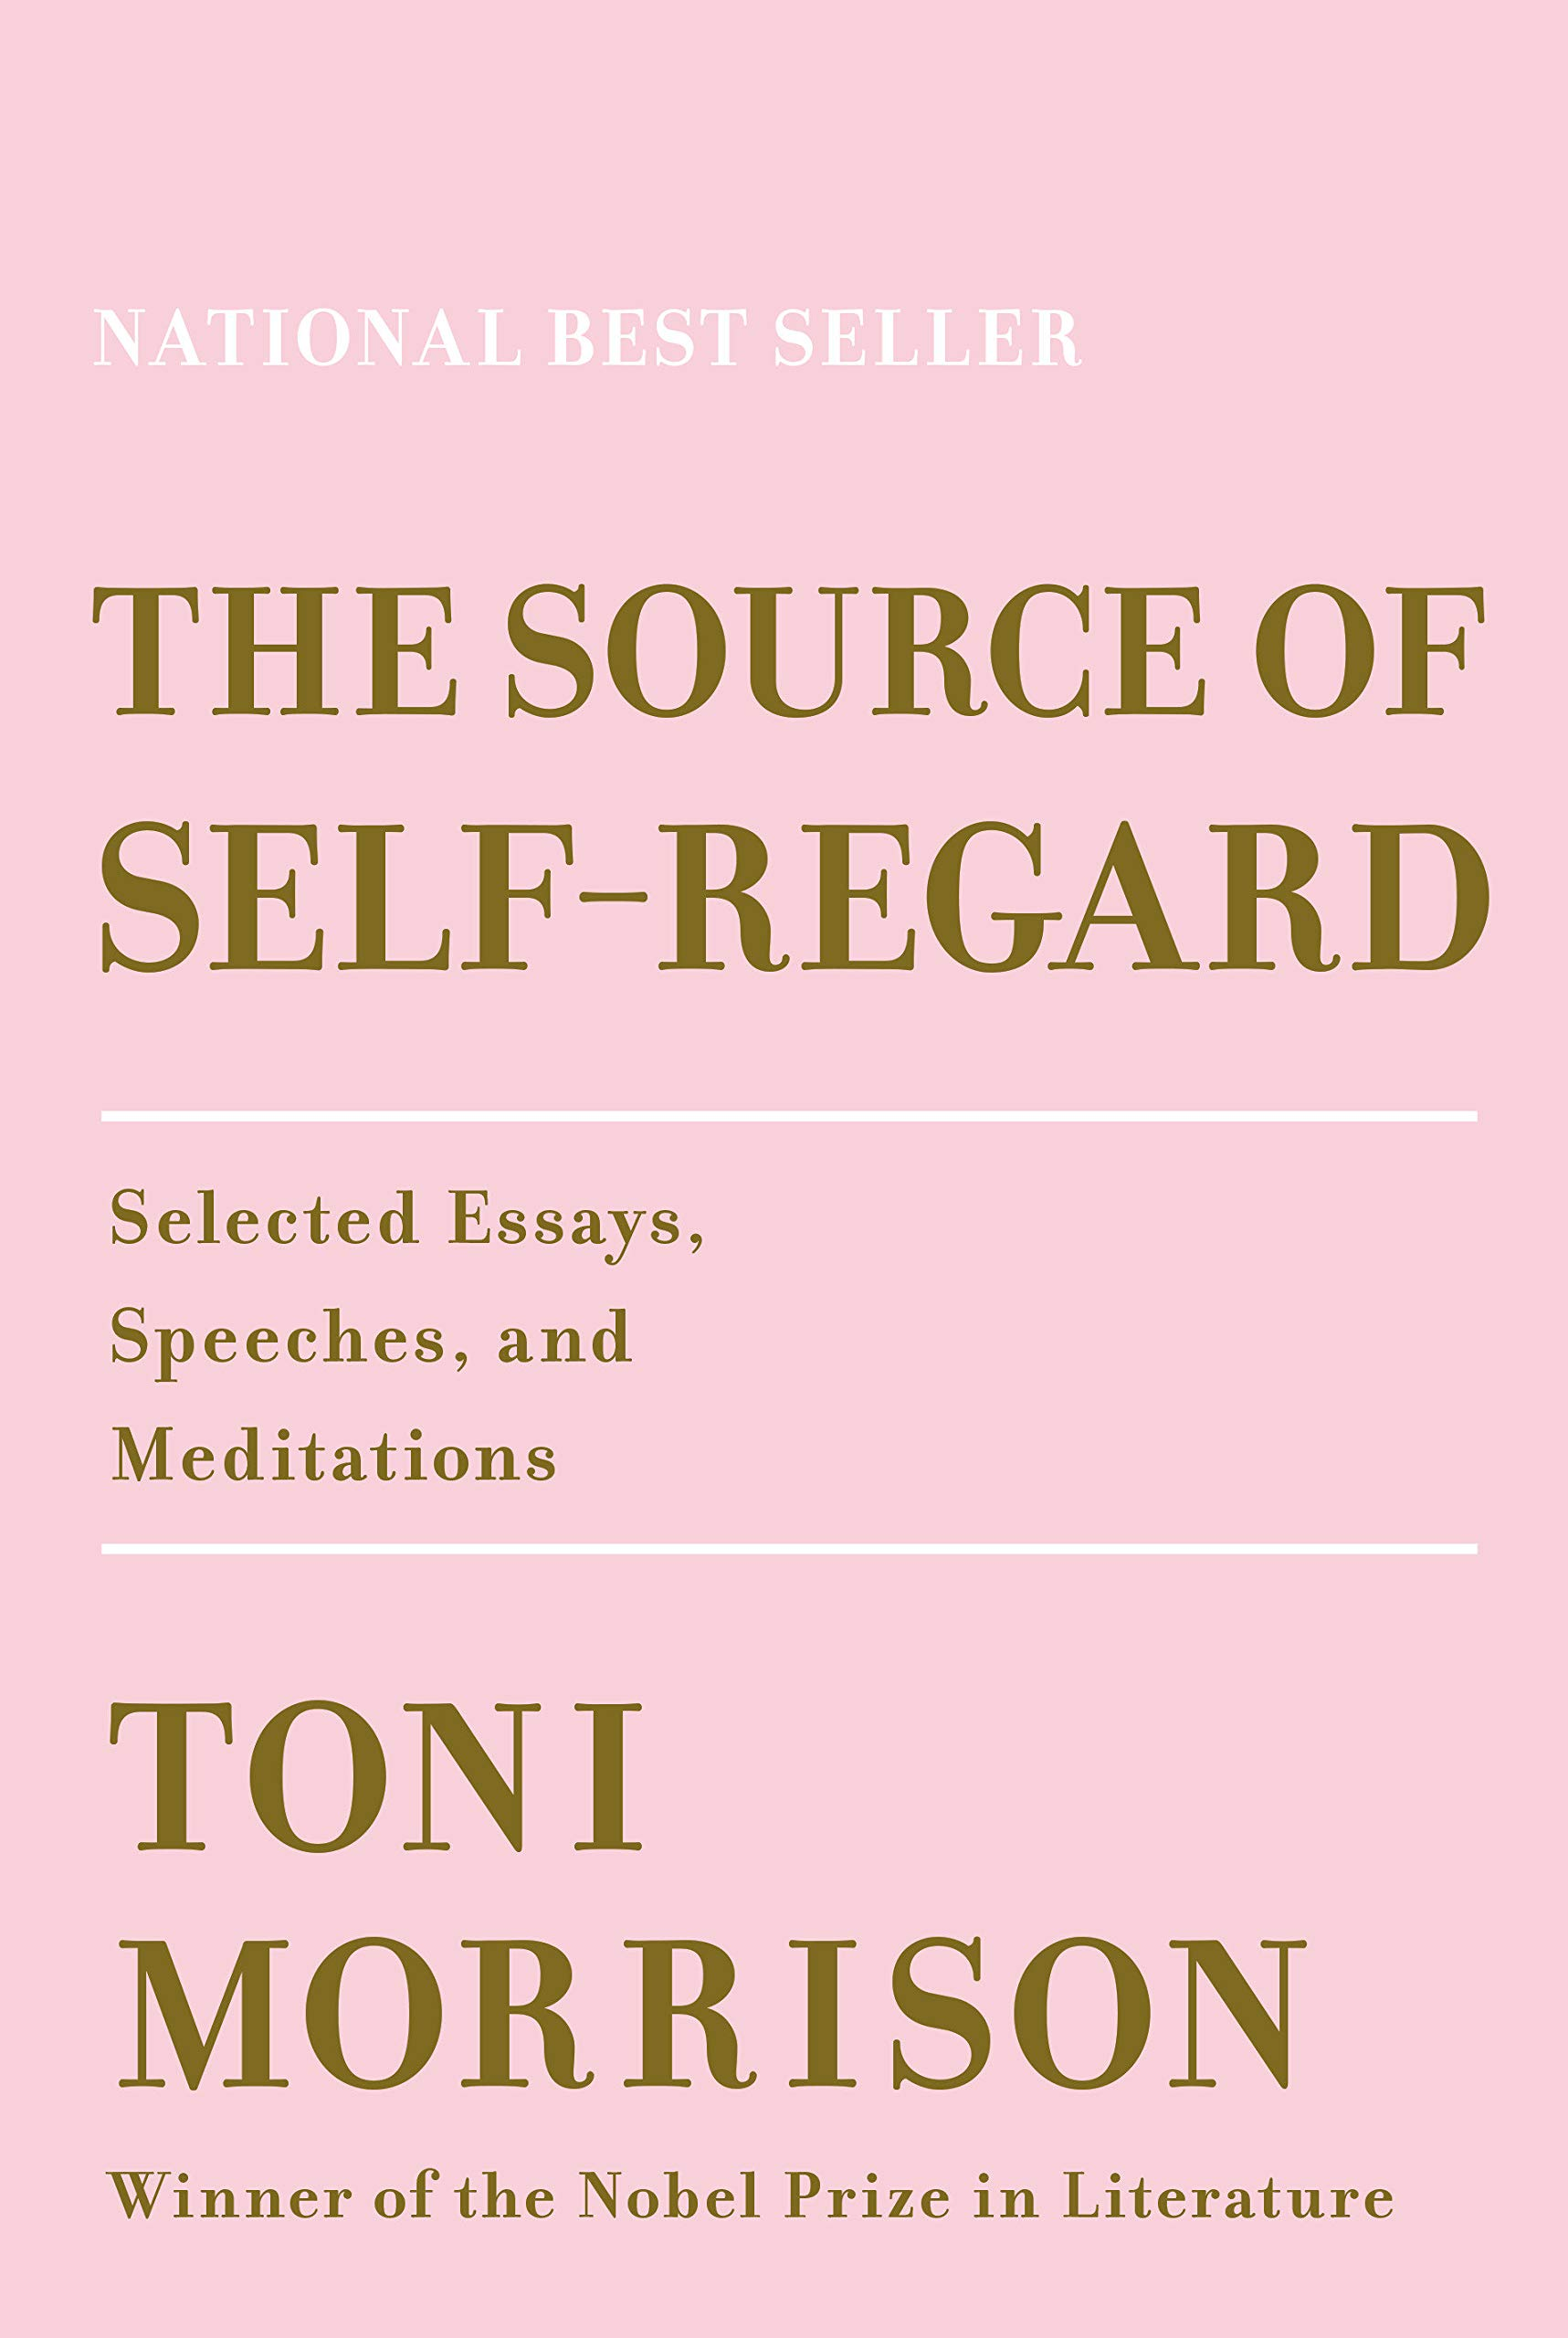 The Source of Self-Regard book cover image